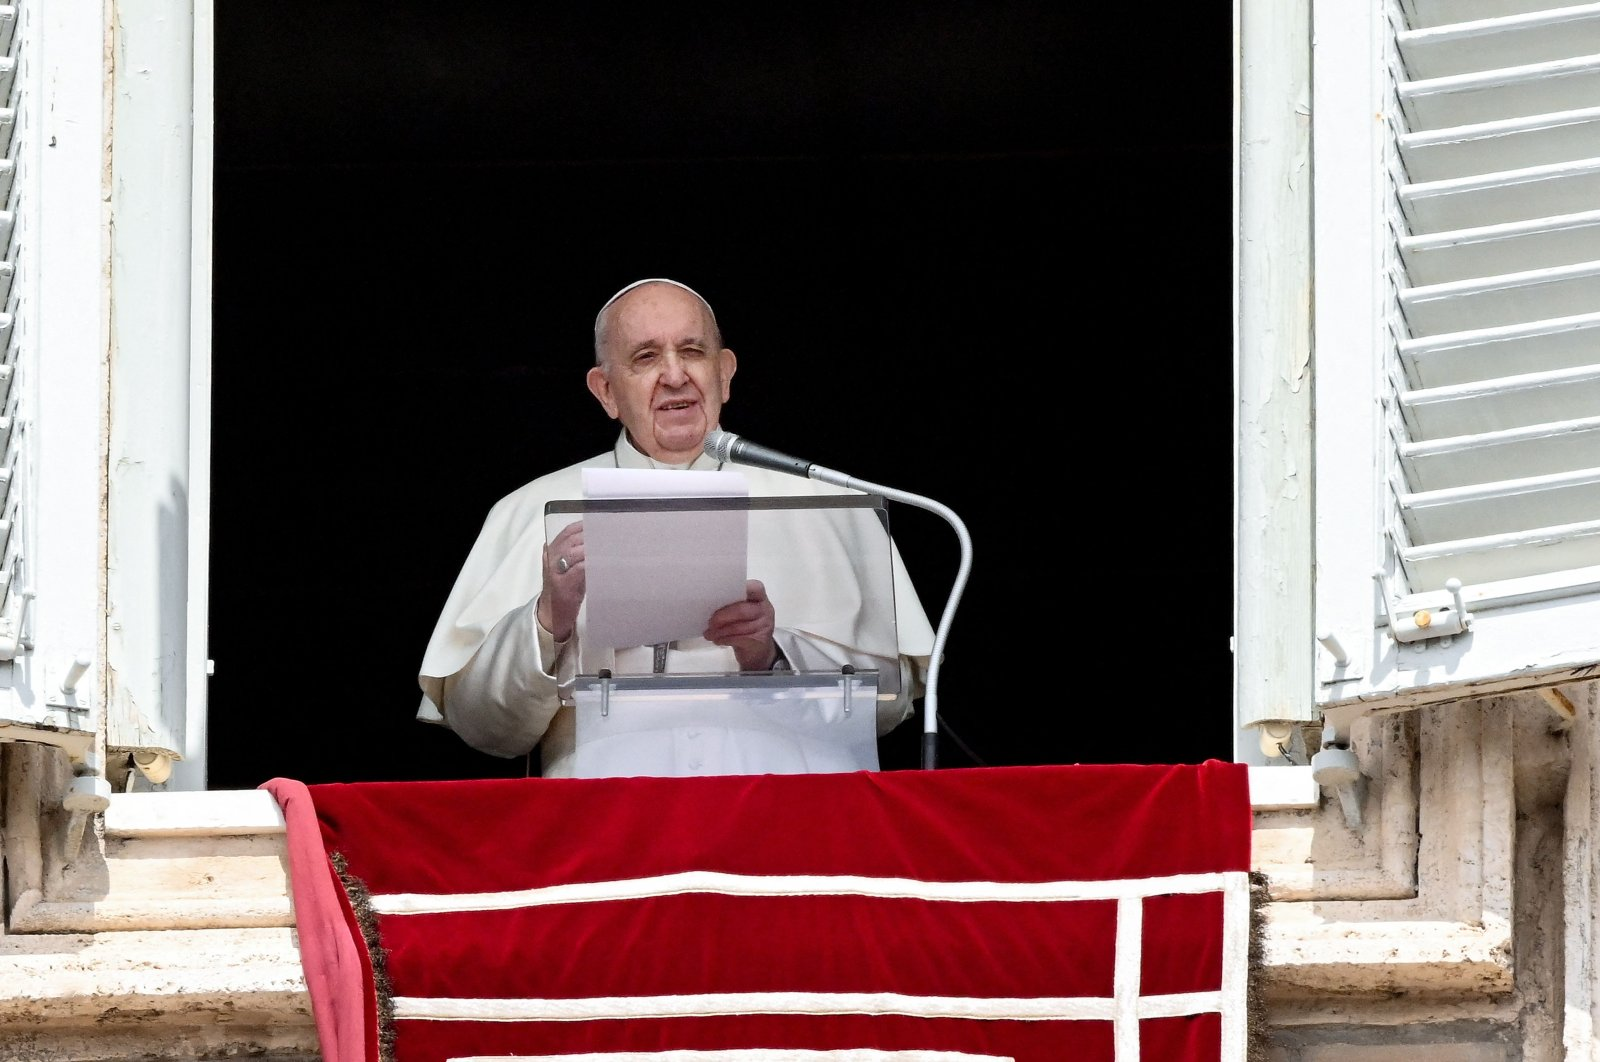 Pope Francis leads the recitation of the Regina Coeli prayer from the window of the apostolic palace overlooking St. Peter's Square in Vatican City, April 18, 2021. (AP Photo)